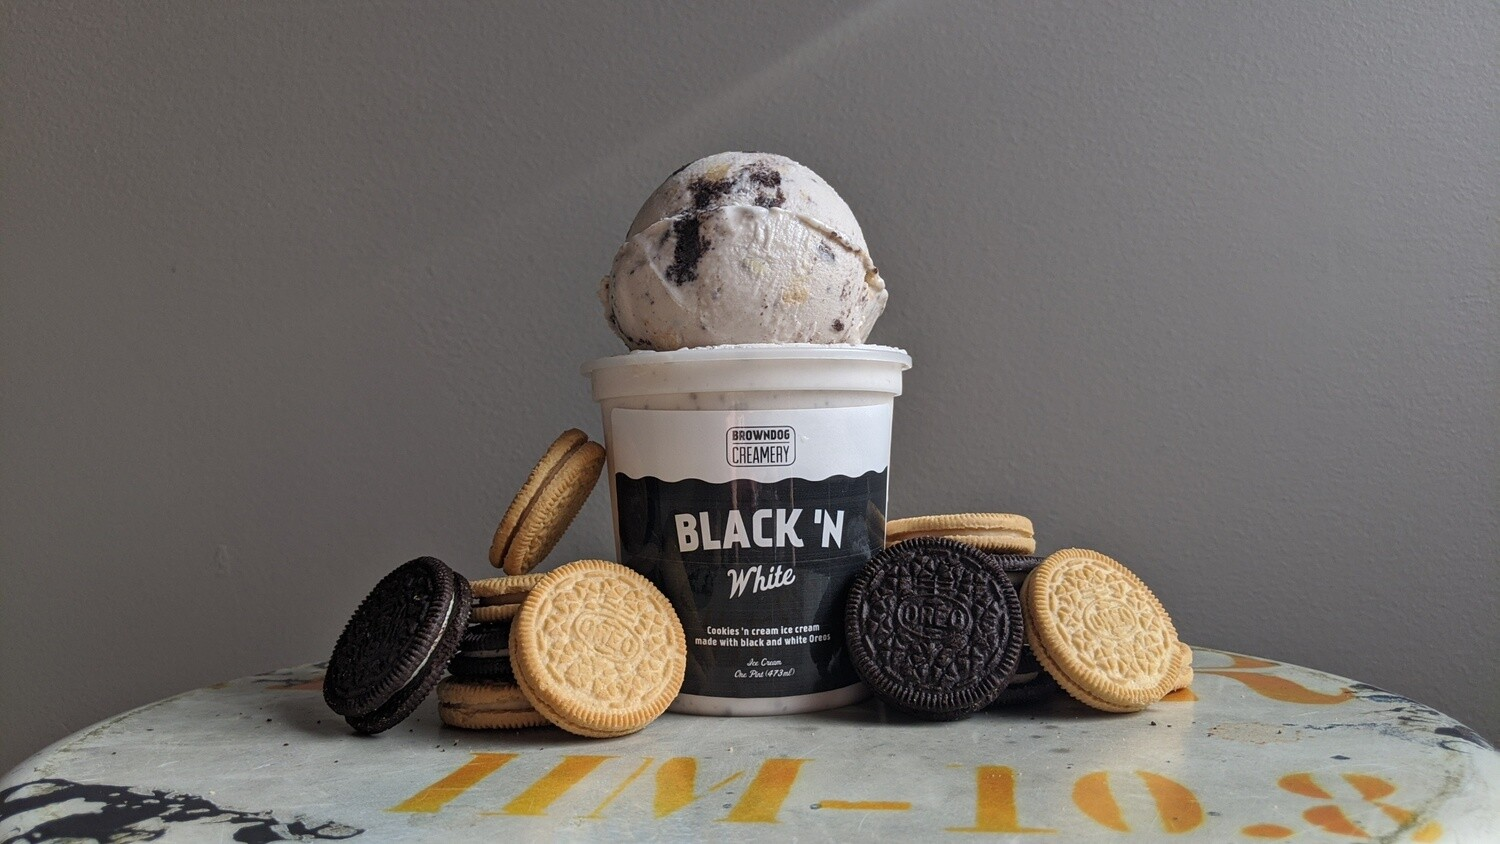 Black 'N White Ice Cream